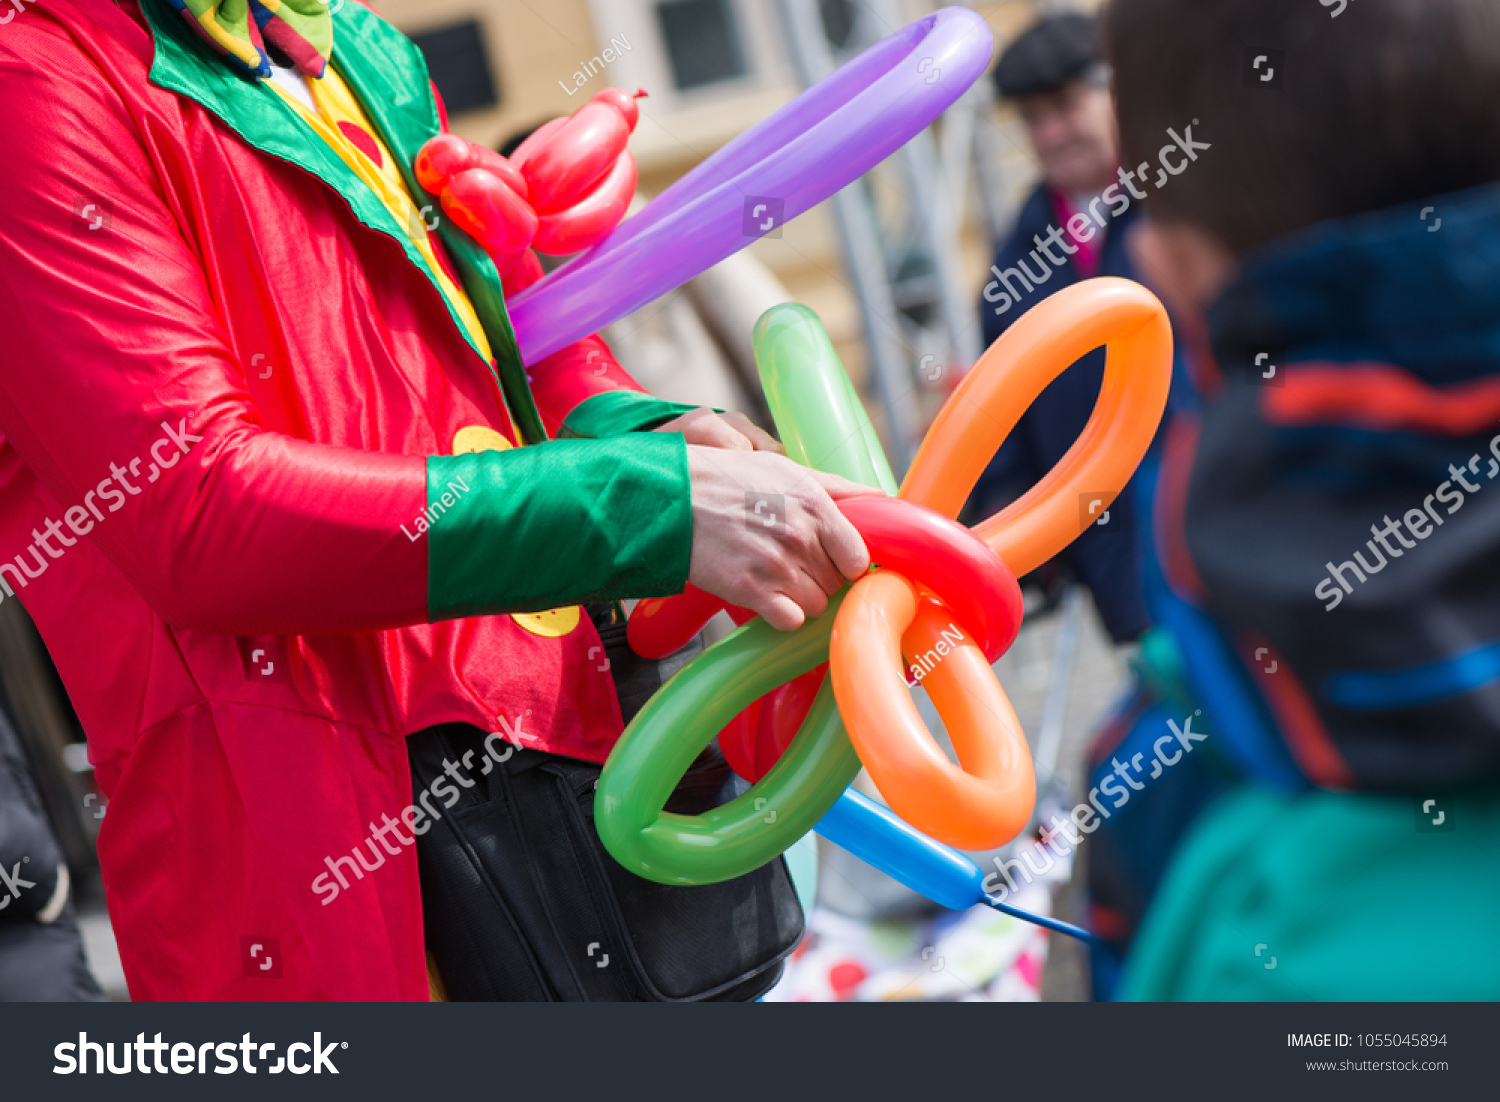 A freelance clown creating balloon animals and different shapes at outdoor festival in city centre. School bag, angel wings, butterflies and dogs made of balloons. Concept of entertainment, birthdays #1055045894